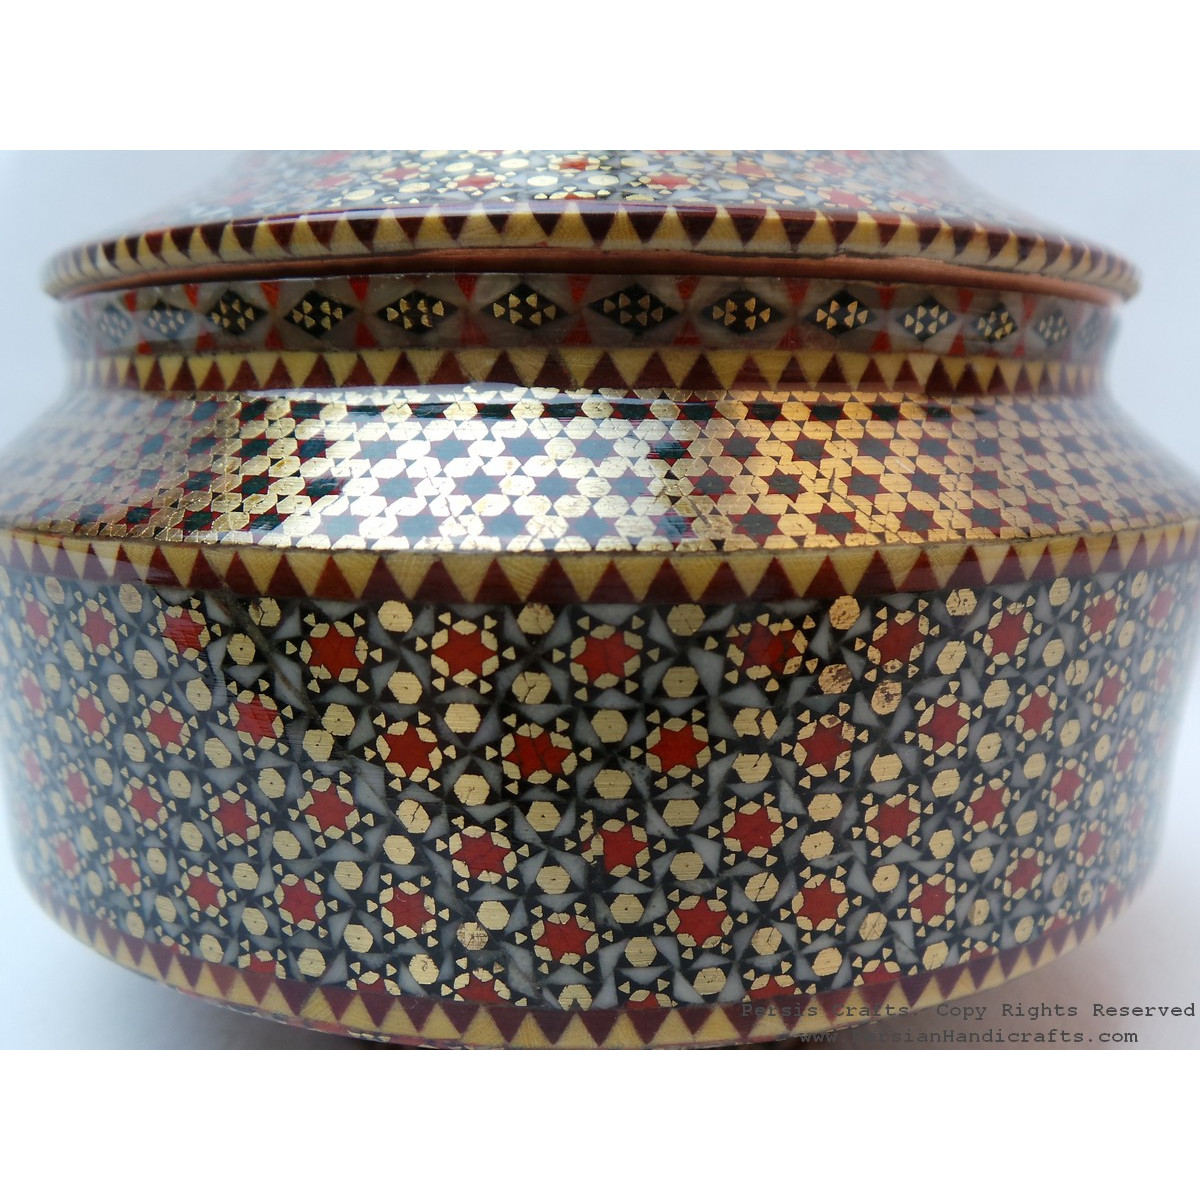 Khatam on Copper Candy Bowl Dish - HKH3003-Persian Handicrafts